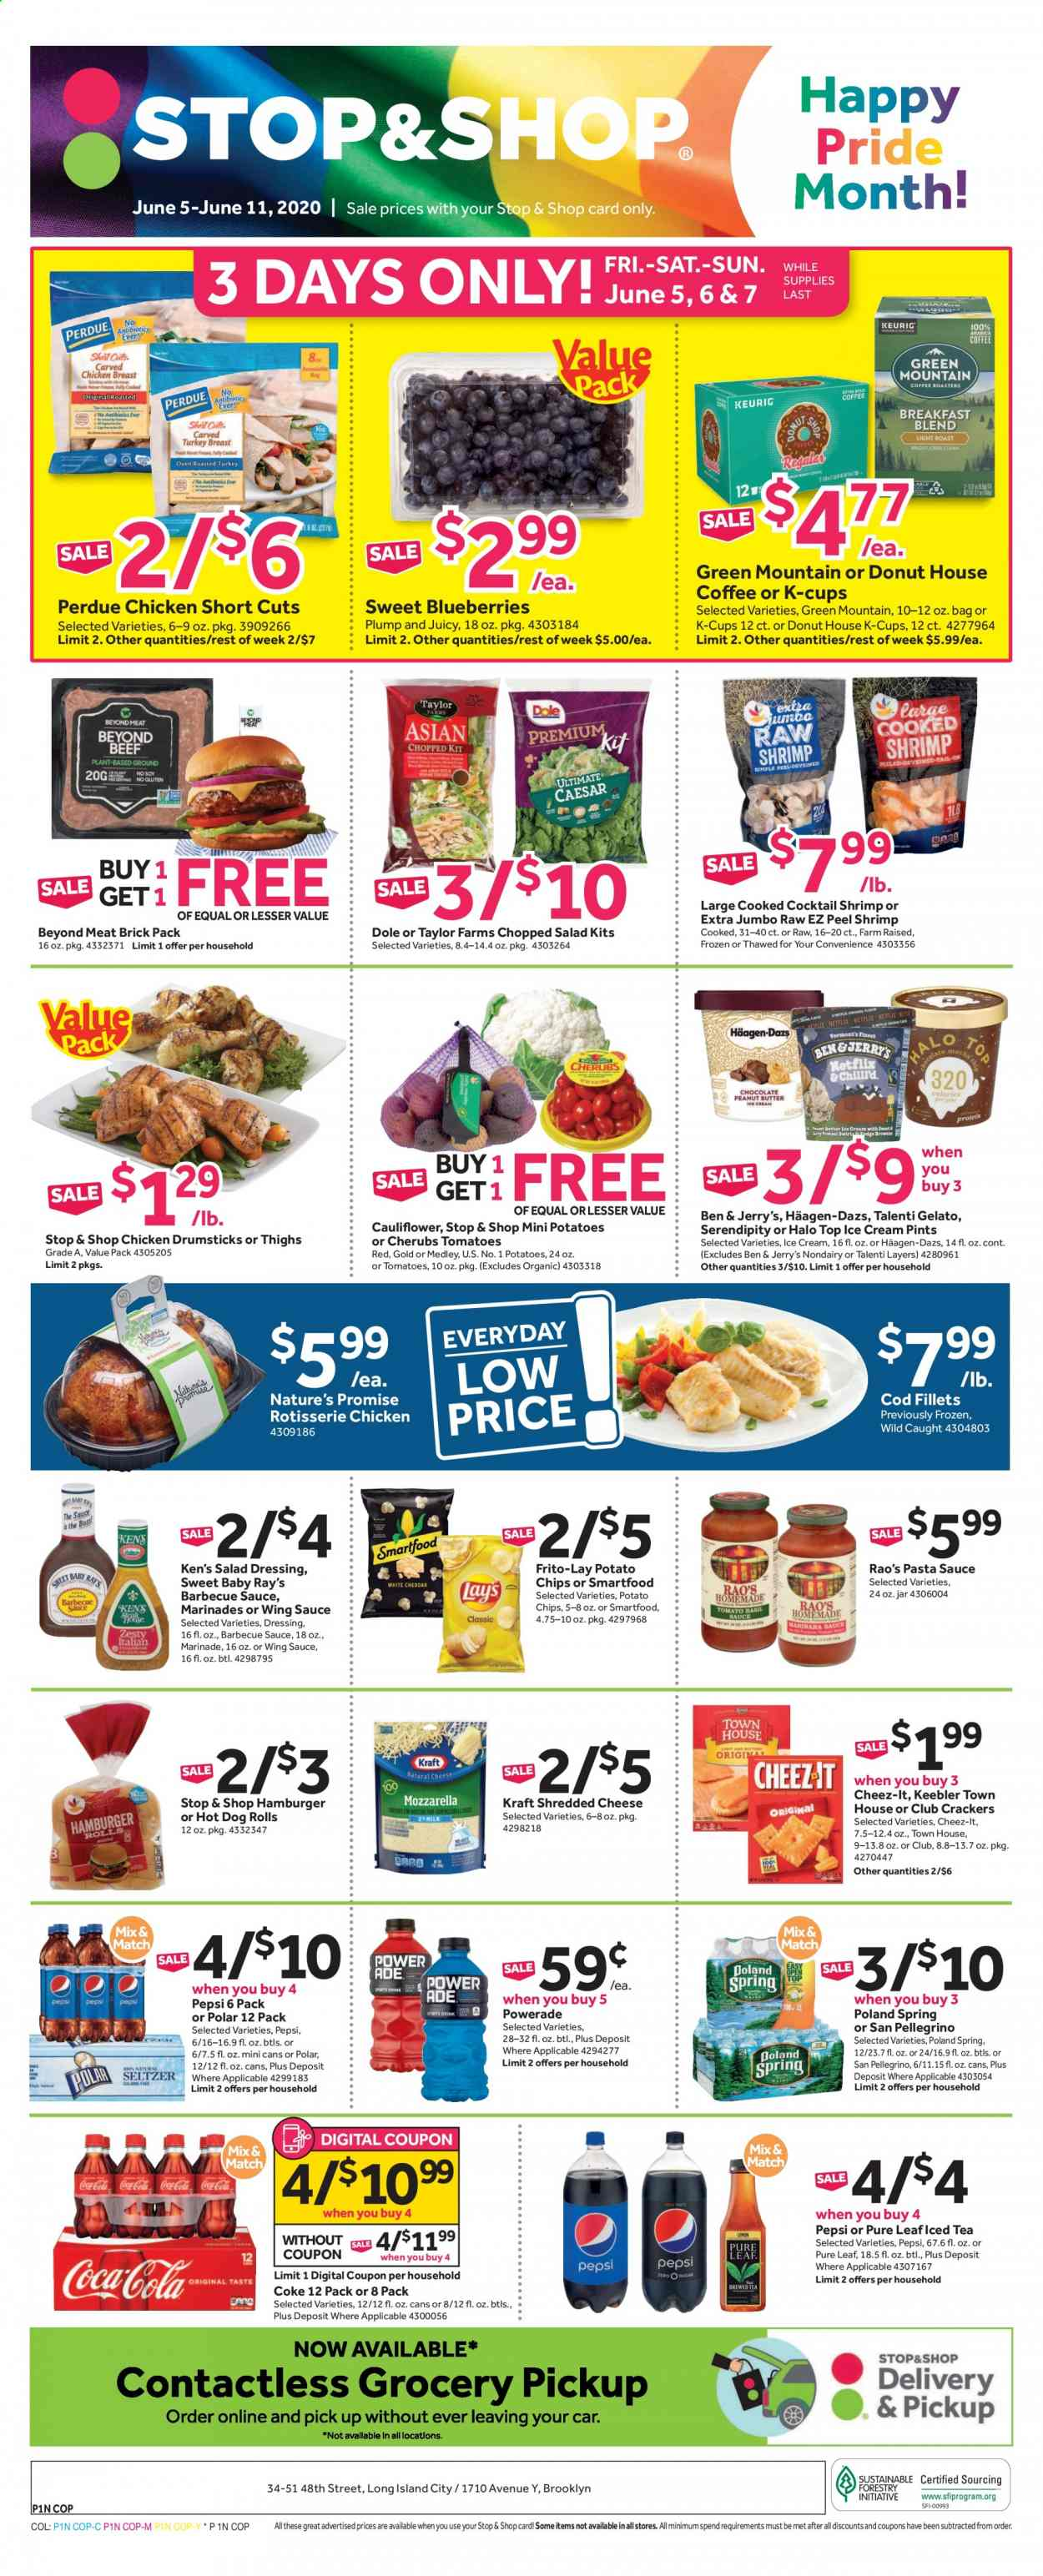 Stop & Shop Flyer  - 06.05.2020 - 06.11.2020. Page 1.